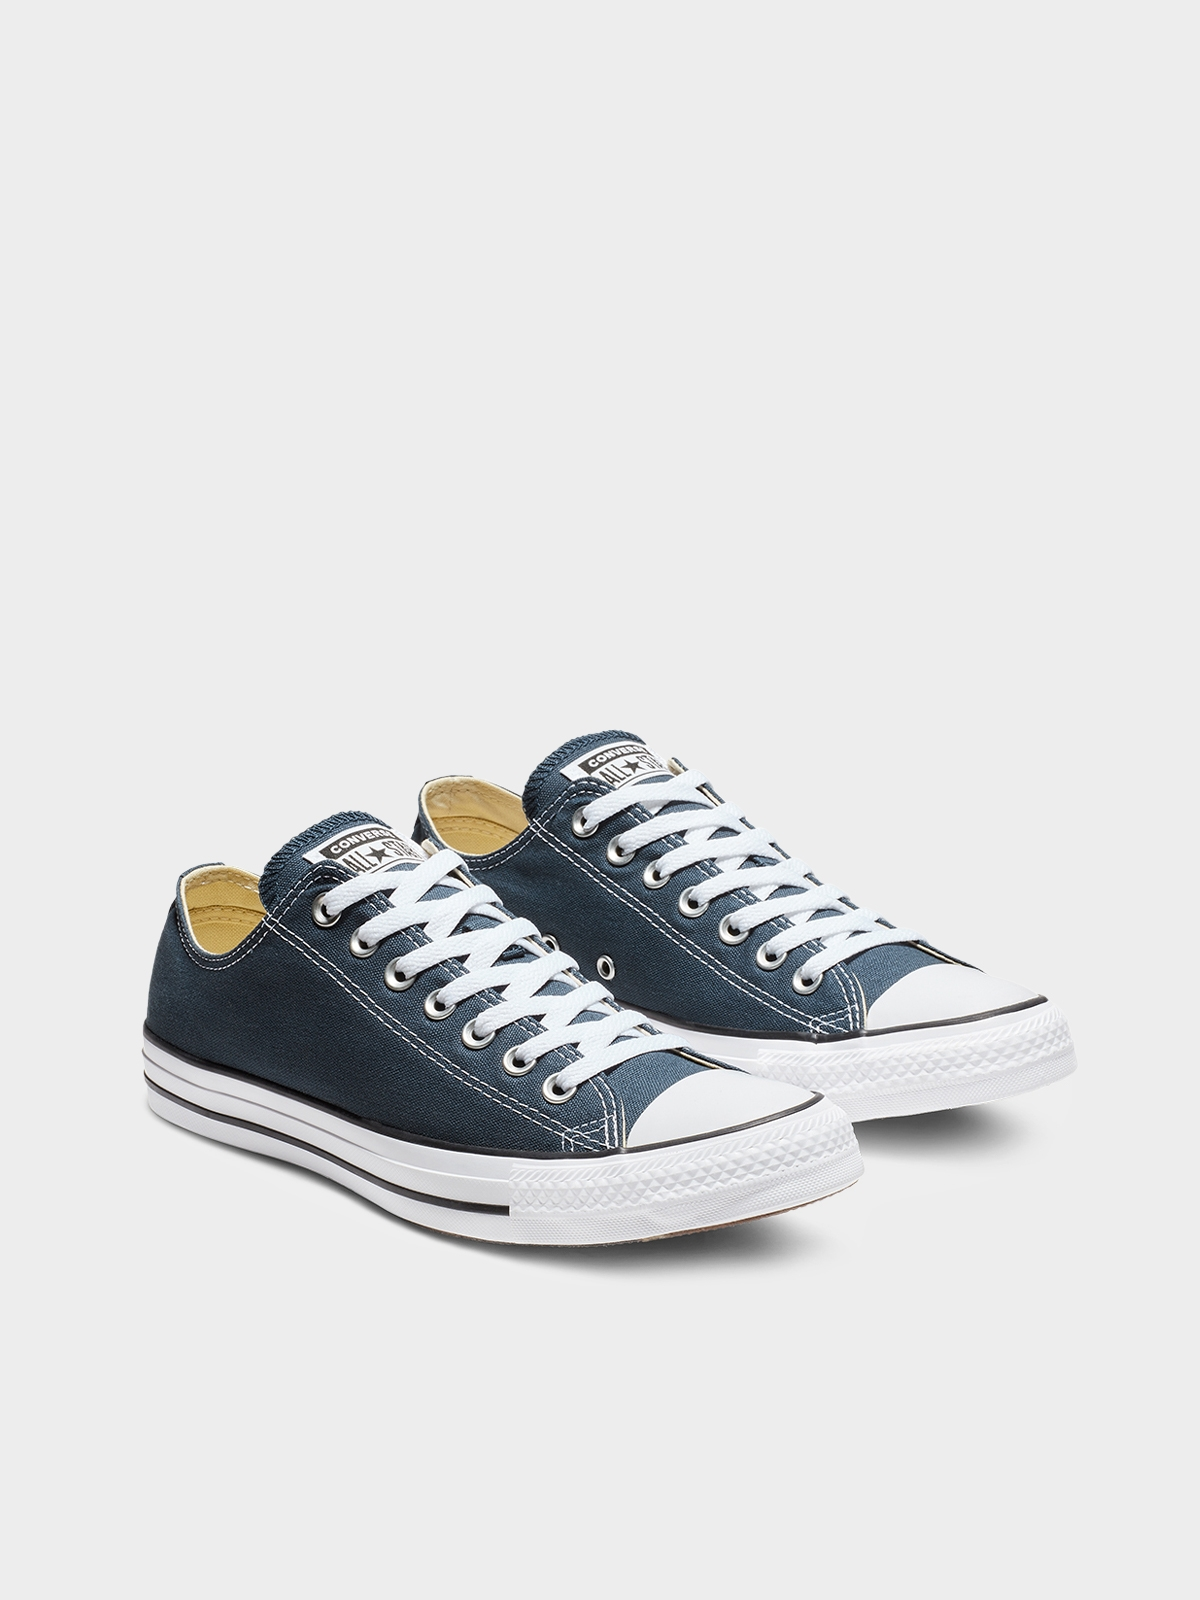 Converse All Star Ox Canvas Sneakers Navy